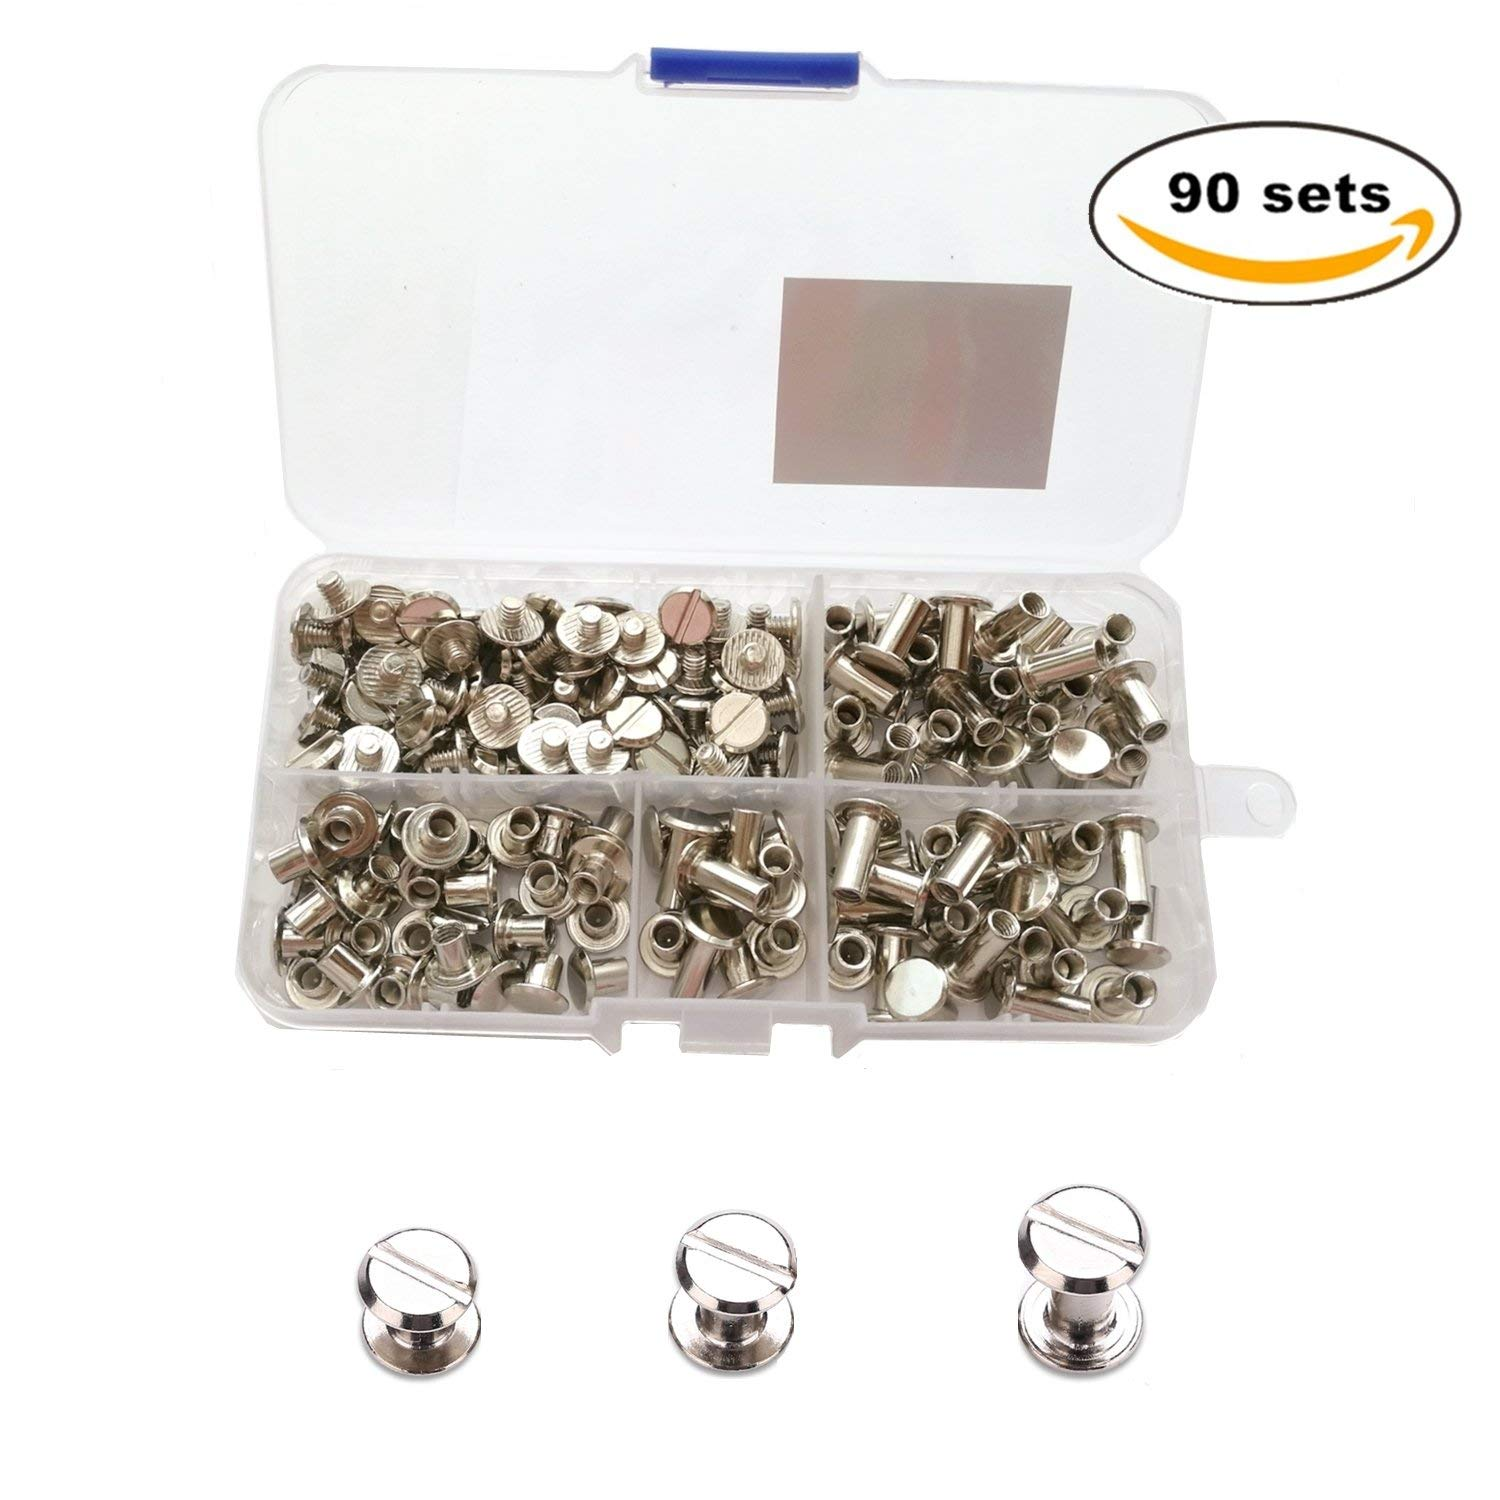 YMAISS 90 Sets Chicago Screws 3 size 1/4,3/8,1/2in Screw Posts Bookbinding Posts Binding Screw Chicago Button Post Rivets Screw Belt screws Leather Photo Albums Screw Round Flat Head, Silver Color